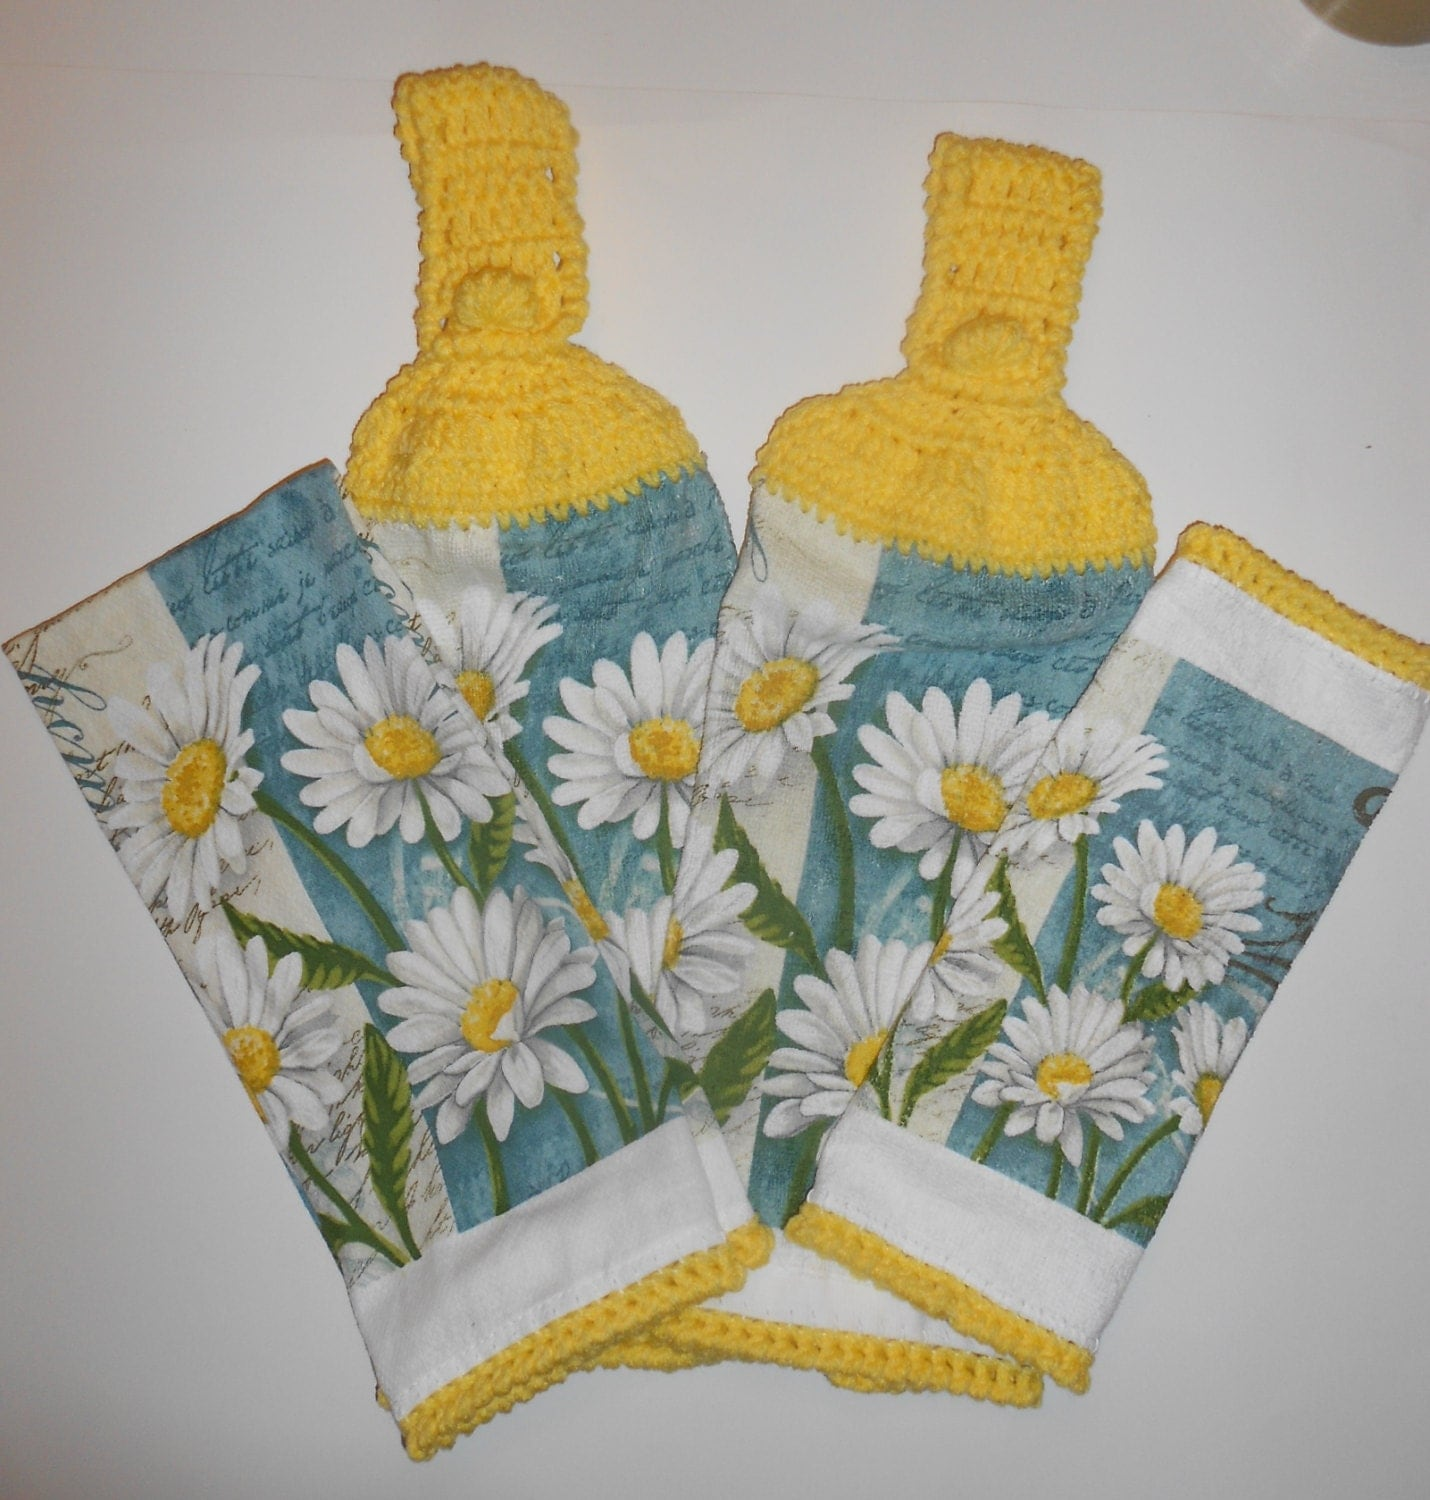 Daisy Kitchen Set Crochet Hanging Towels Dish Cloth Cotton